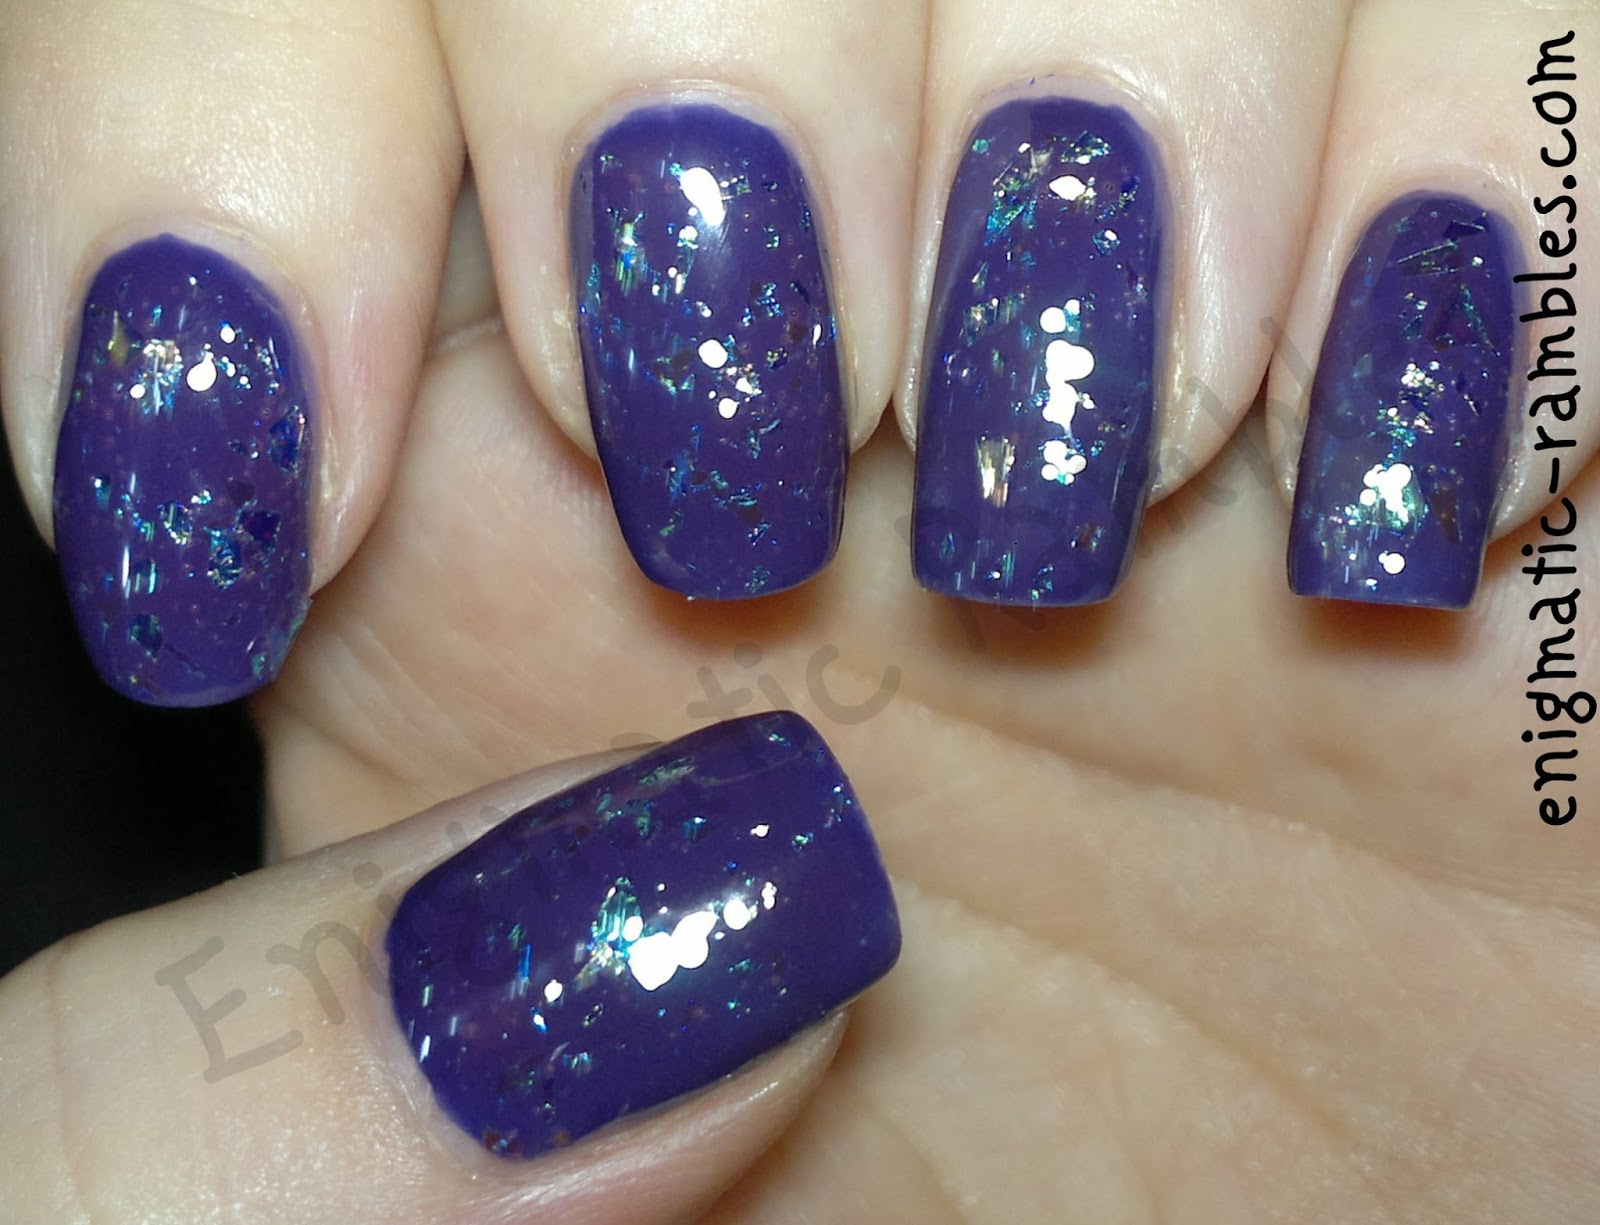 swatch-avon-purple-opal-topcoat-top-coat-yes-love-k033